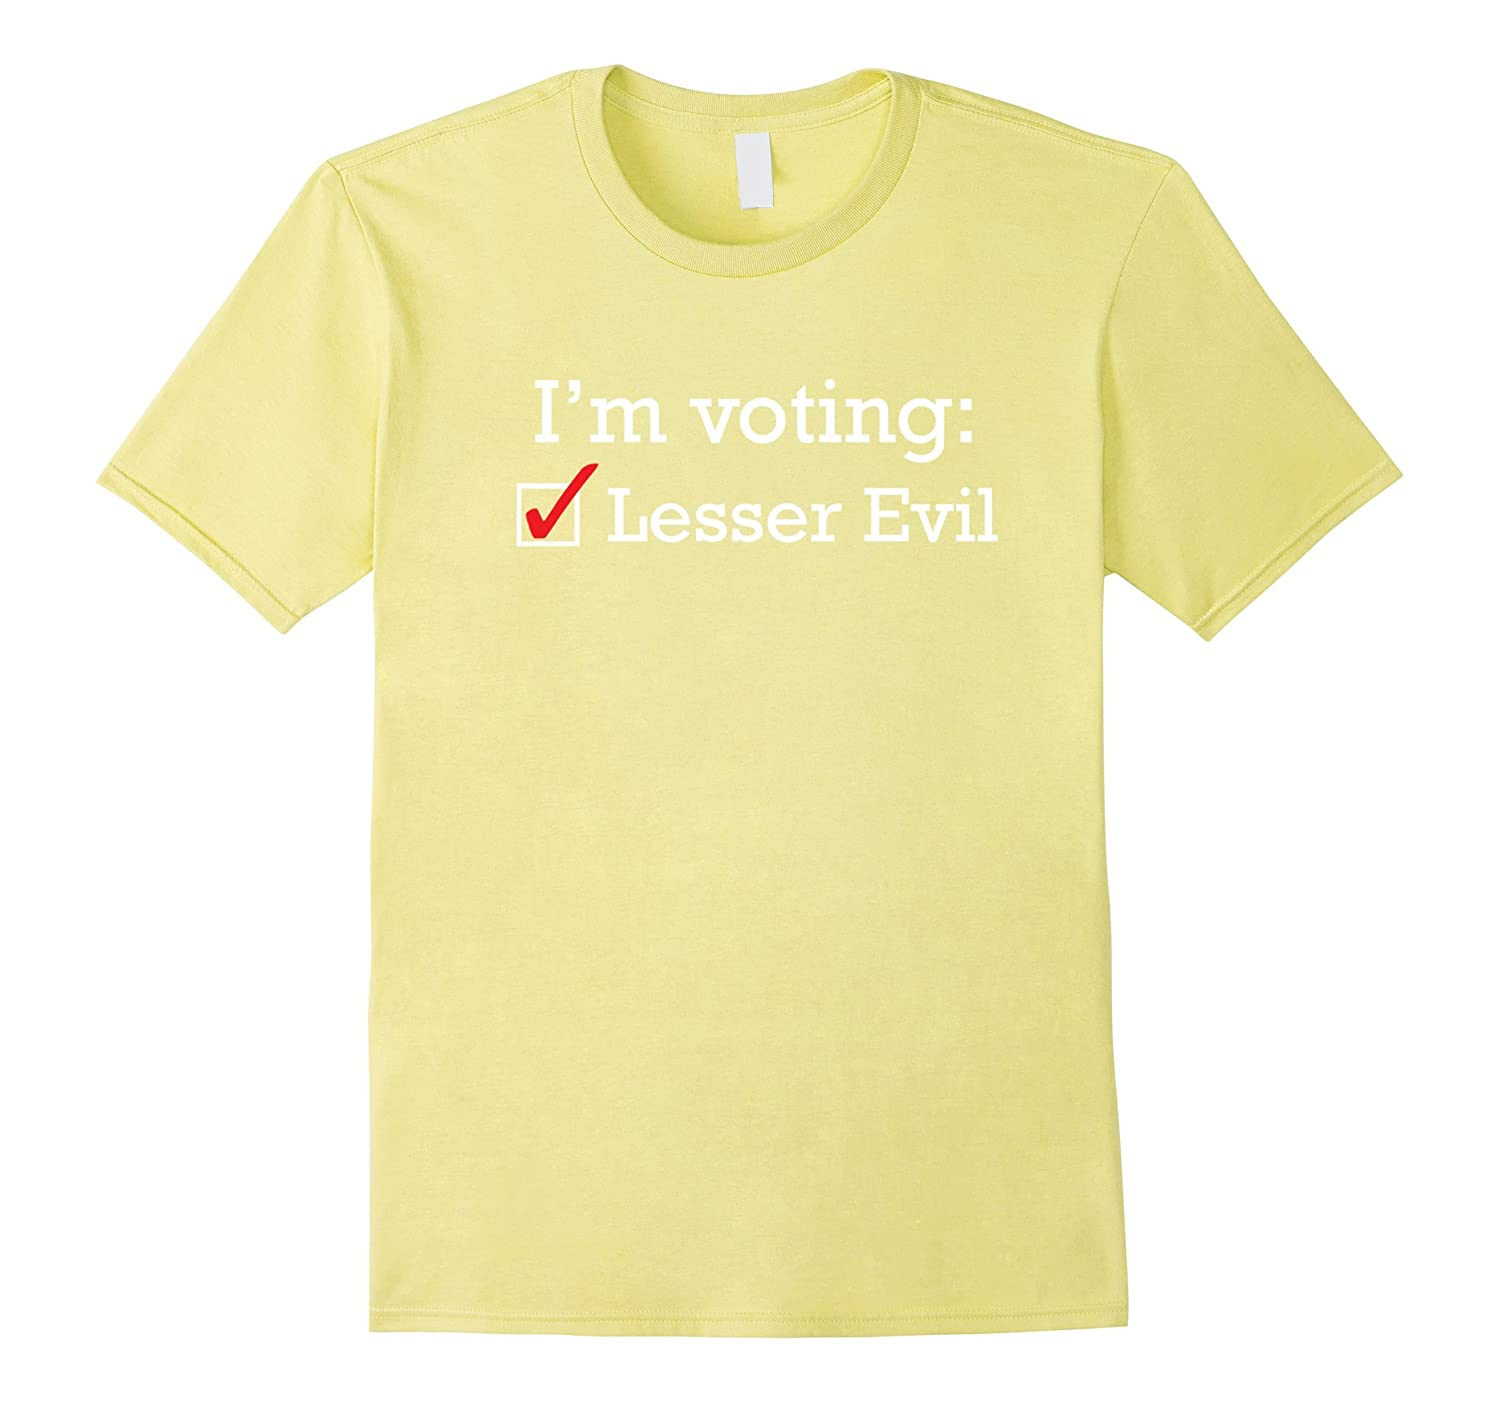 #1 Voting for Lesser Evil shirt for unhappy voters-Art